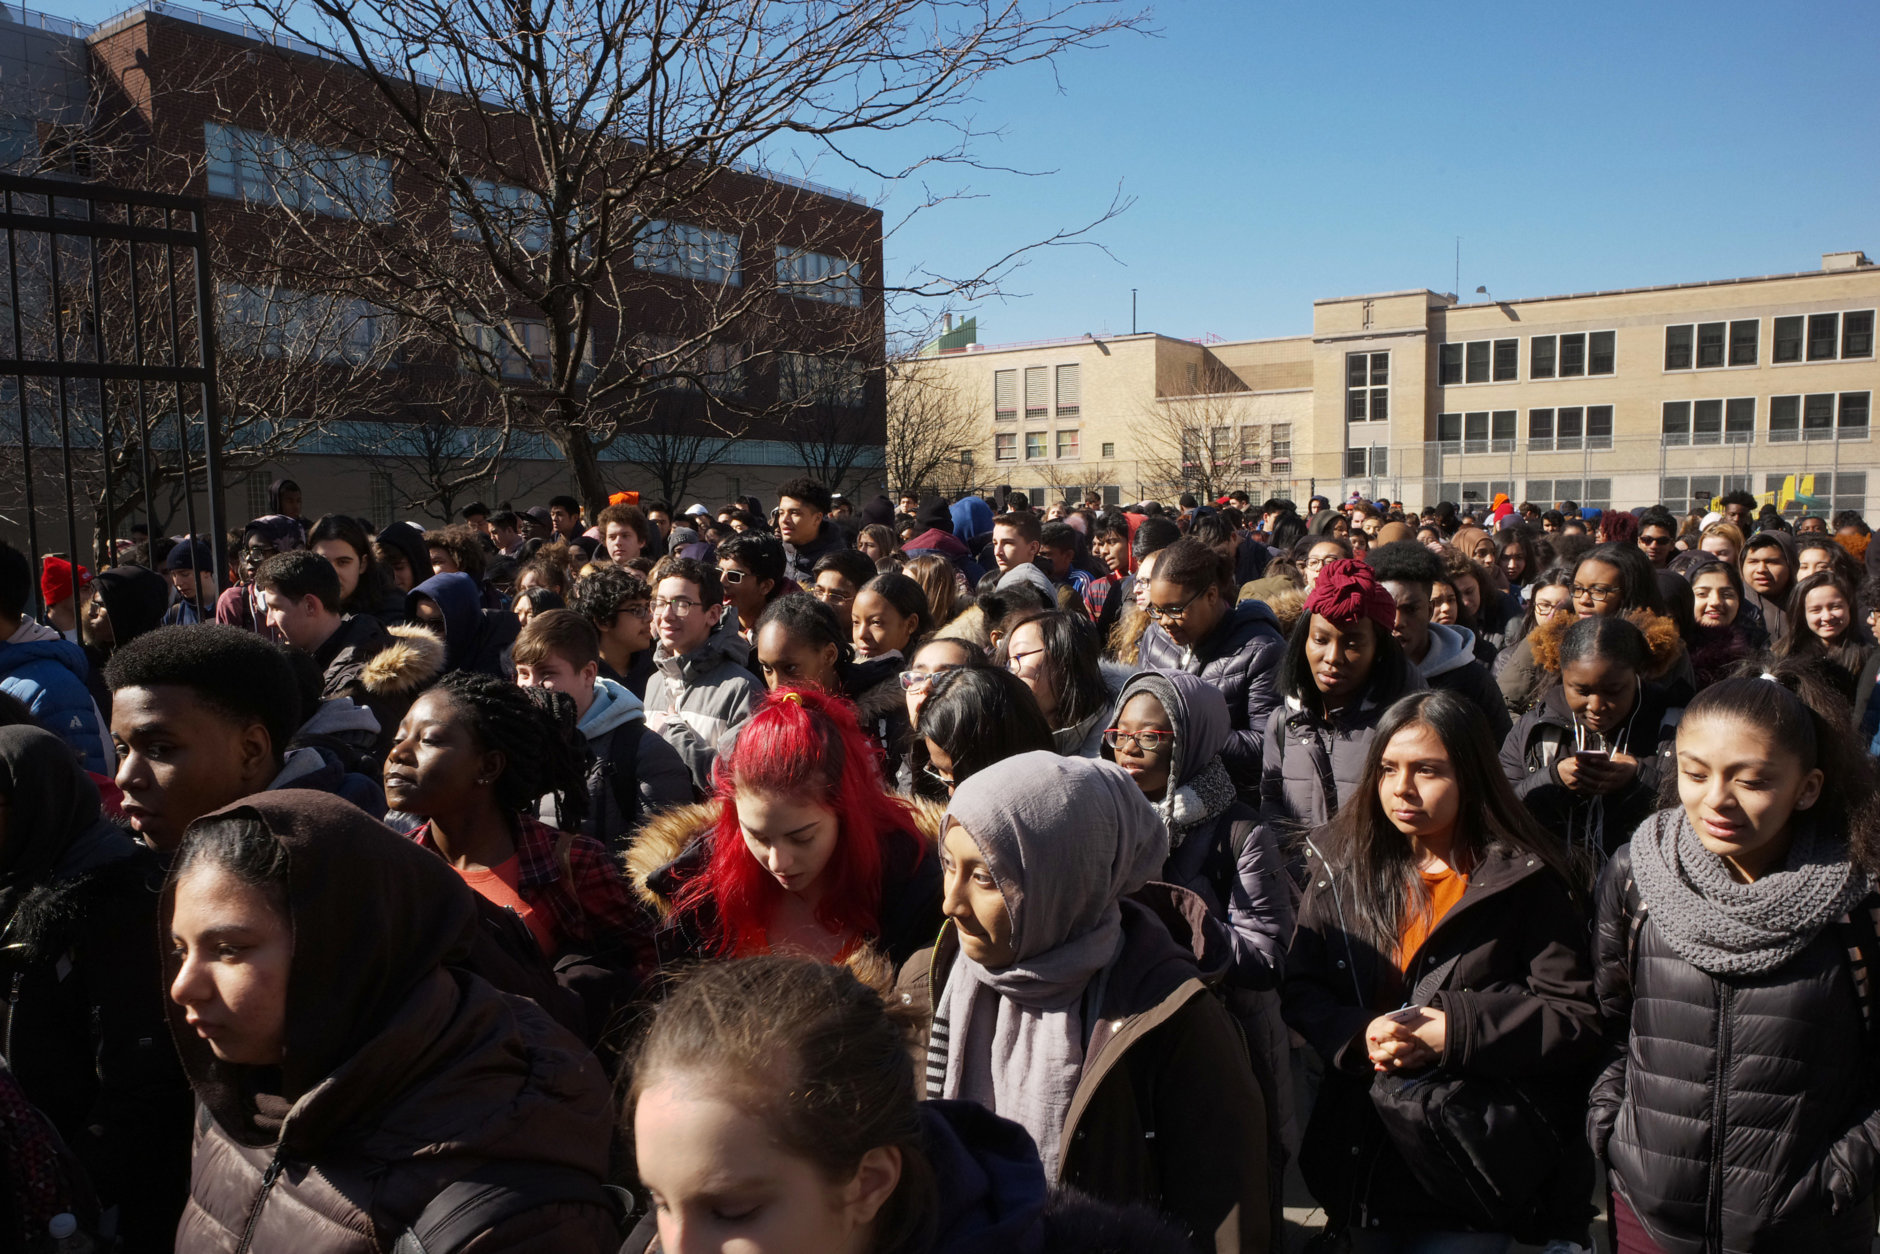 Students walk out of Midwood High School as part of a nationwide protest against gun violence, Wednesday, March 14, 2018 in the Brooklyn borough of New York. It is the nation's biggest demonstration yet of the student activism that has emerged in response to last month's massacre of 17 people at Florida's Marjory Stoneman Douglas High School. (AP Photo/Mark Lennihan)